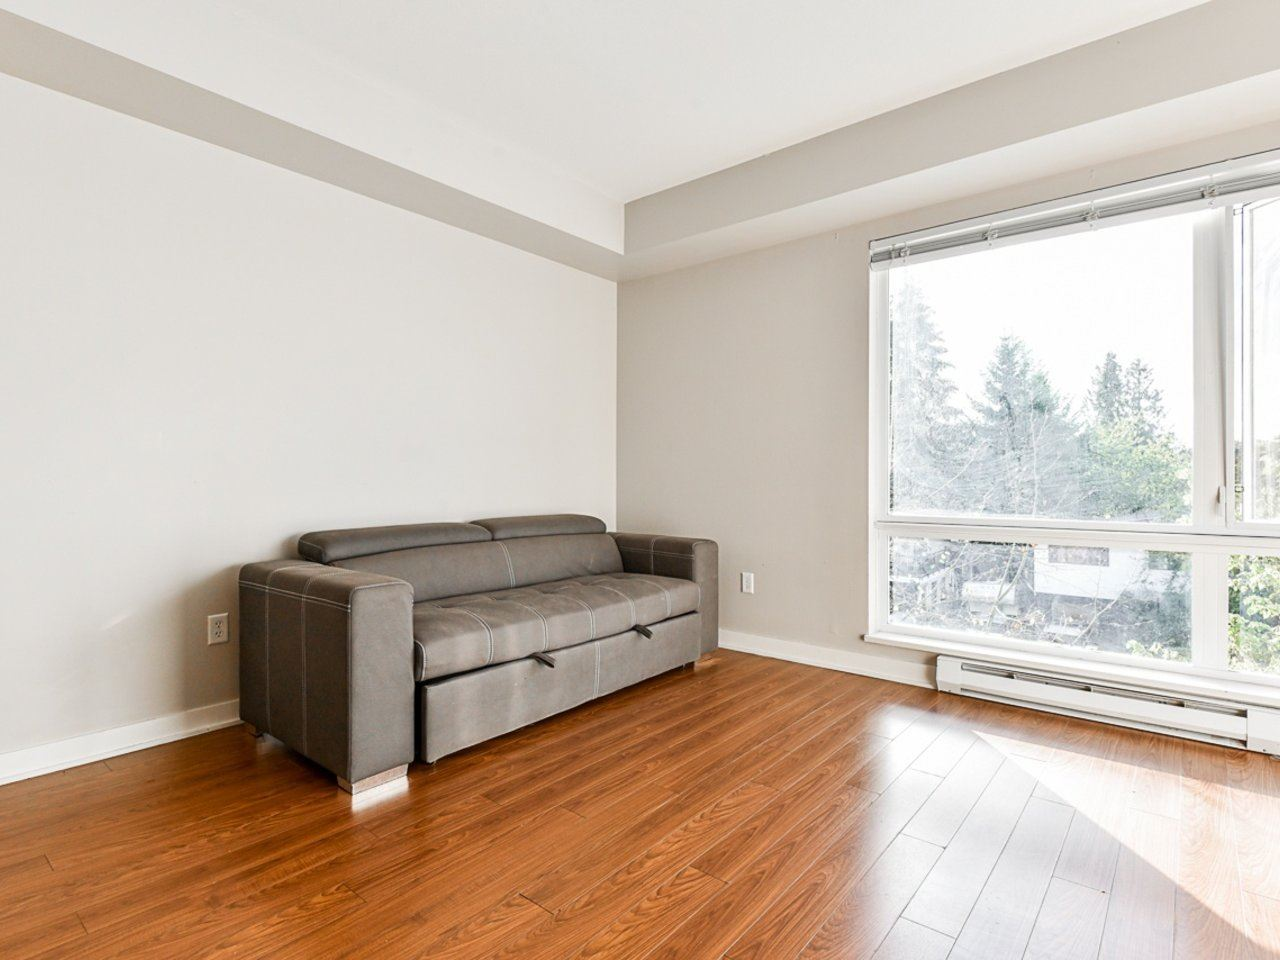 329 13321 102A AVENUE - Whalley Apartment/Condo for sale, 1 Bedroom (R2508611) - #11